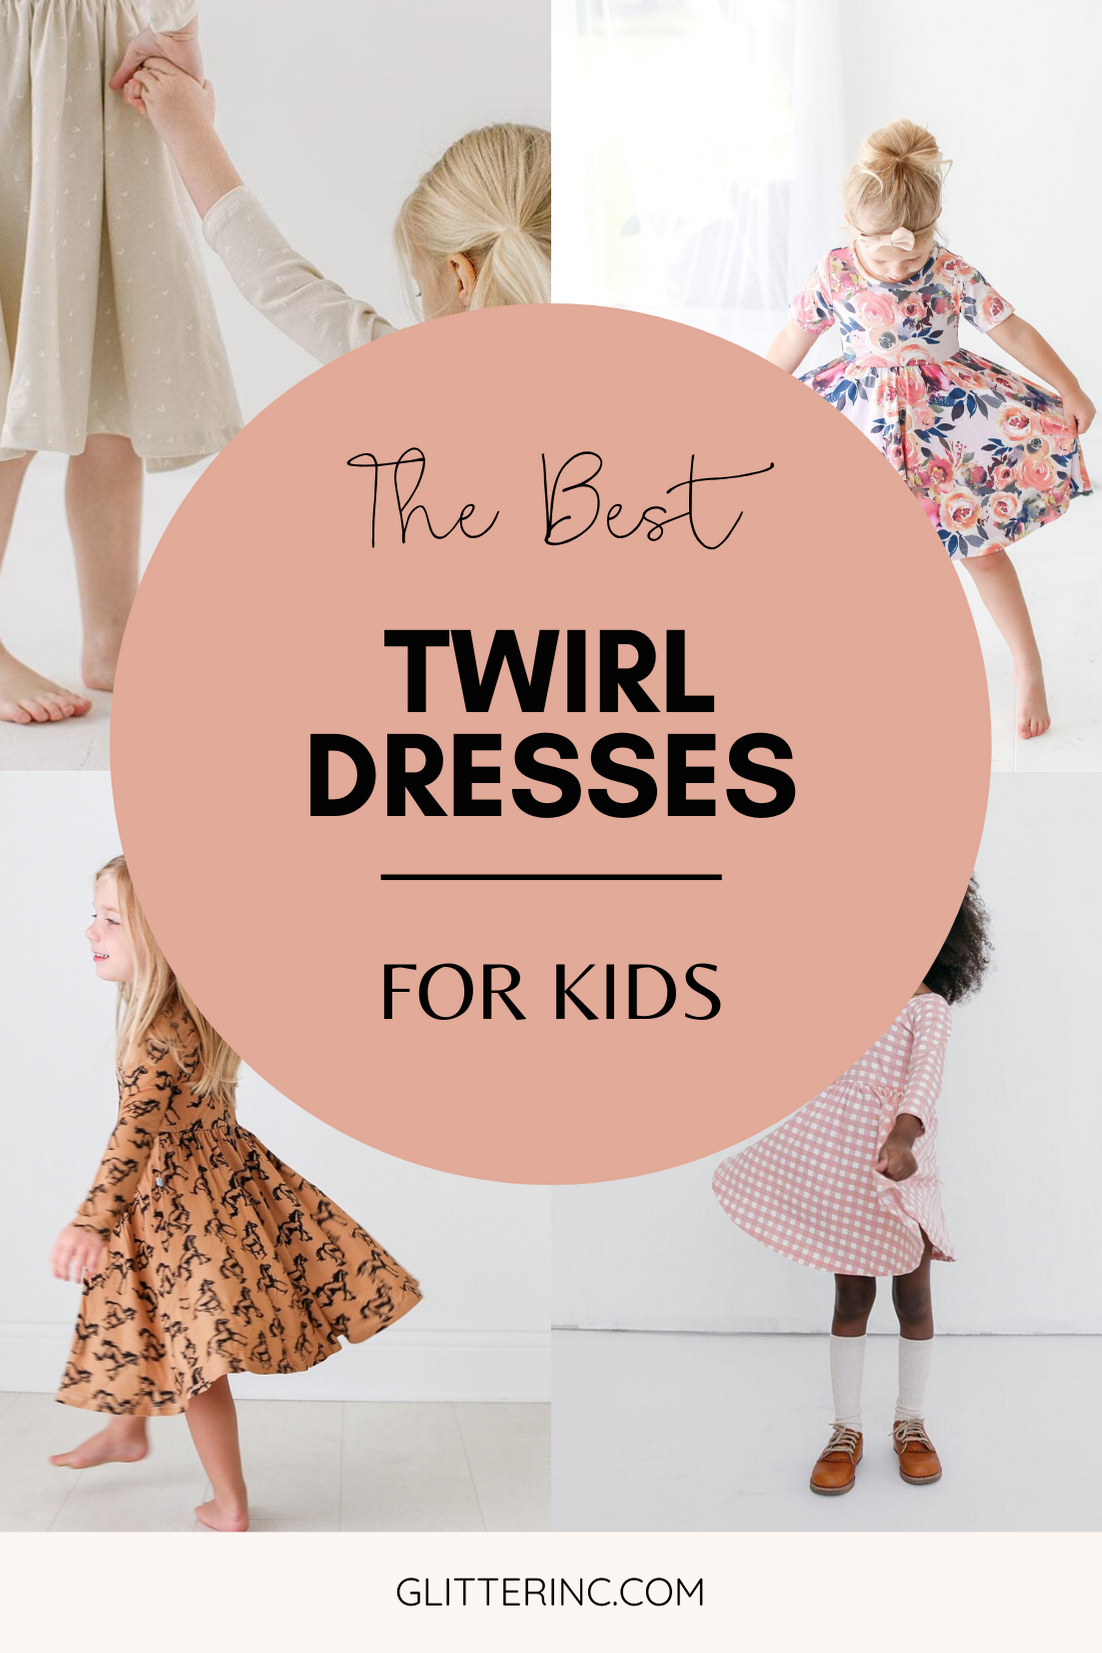 If you have a little girl who loves a great twirly dress, this post is for you! Sharing where to find the very best twirl dresses; a.k.a., skater dresses, spin dresses, or swing dresses, for kids. | glitterinc.com | @glitterinc